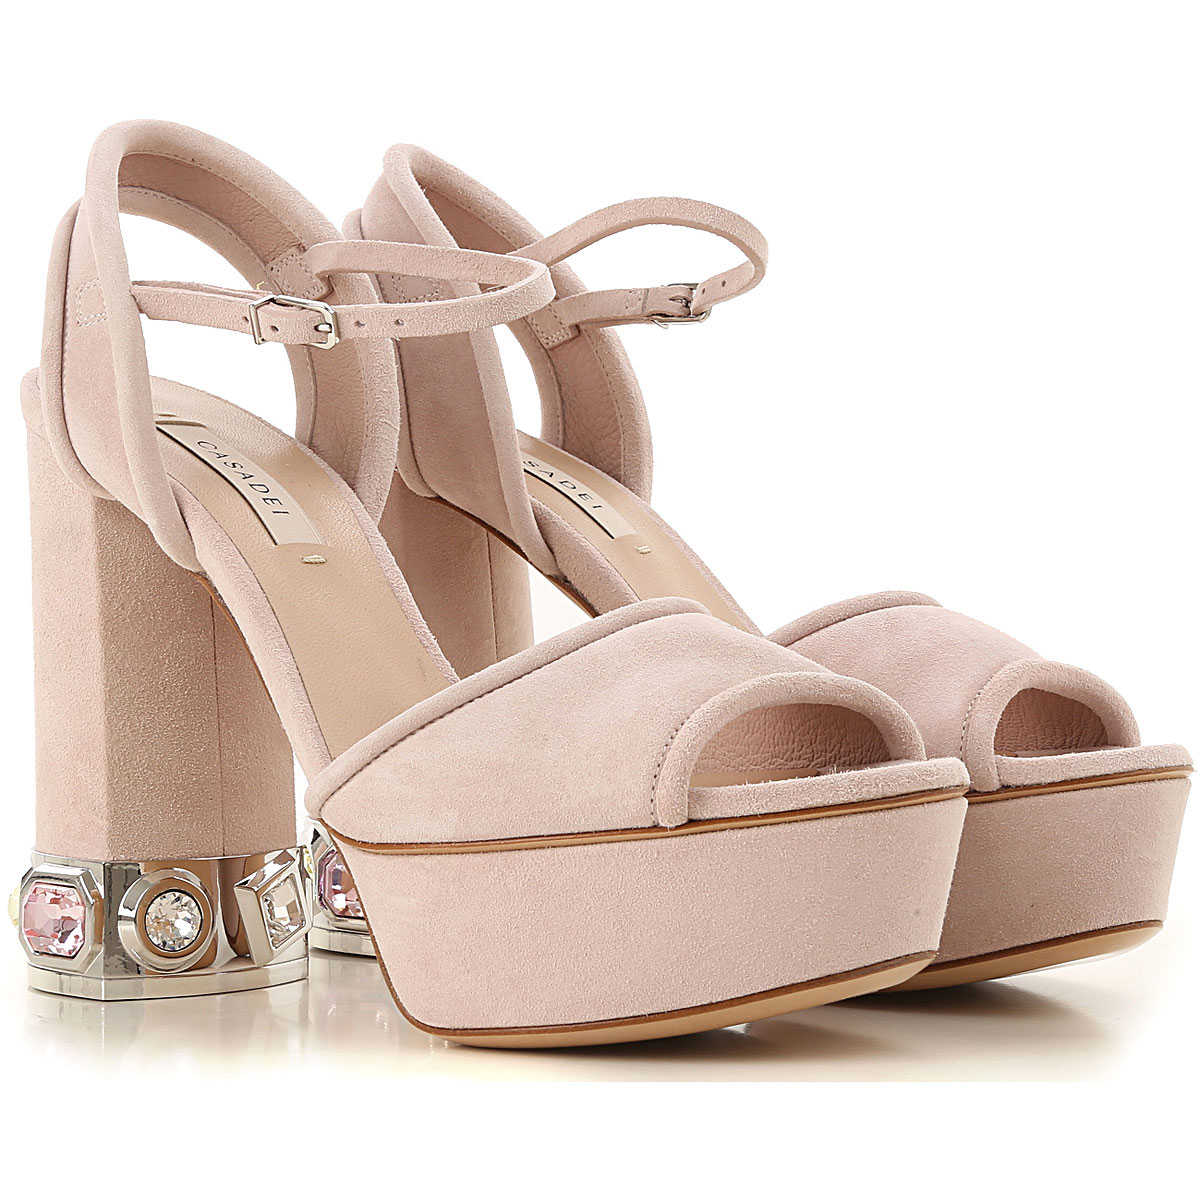 Casadei Sandals for Women in Outlet Light Powder Pink USA - GOOFASH